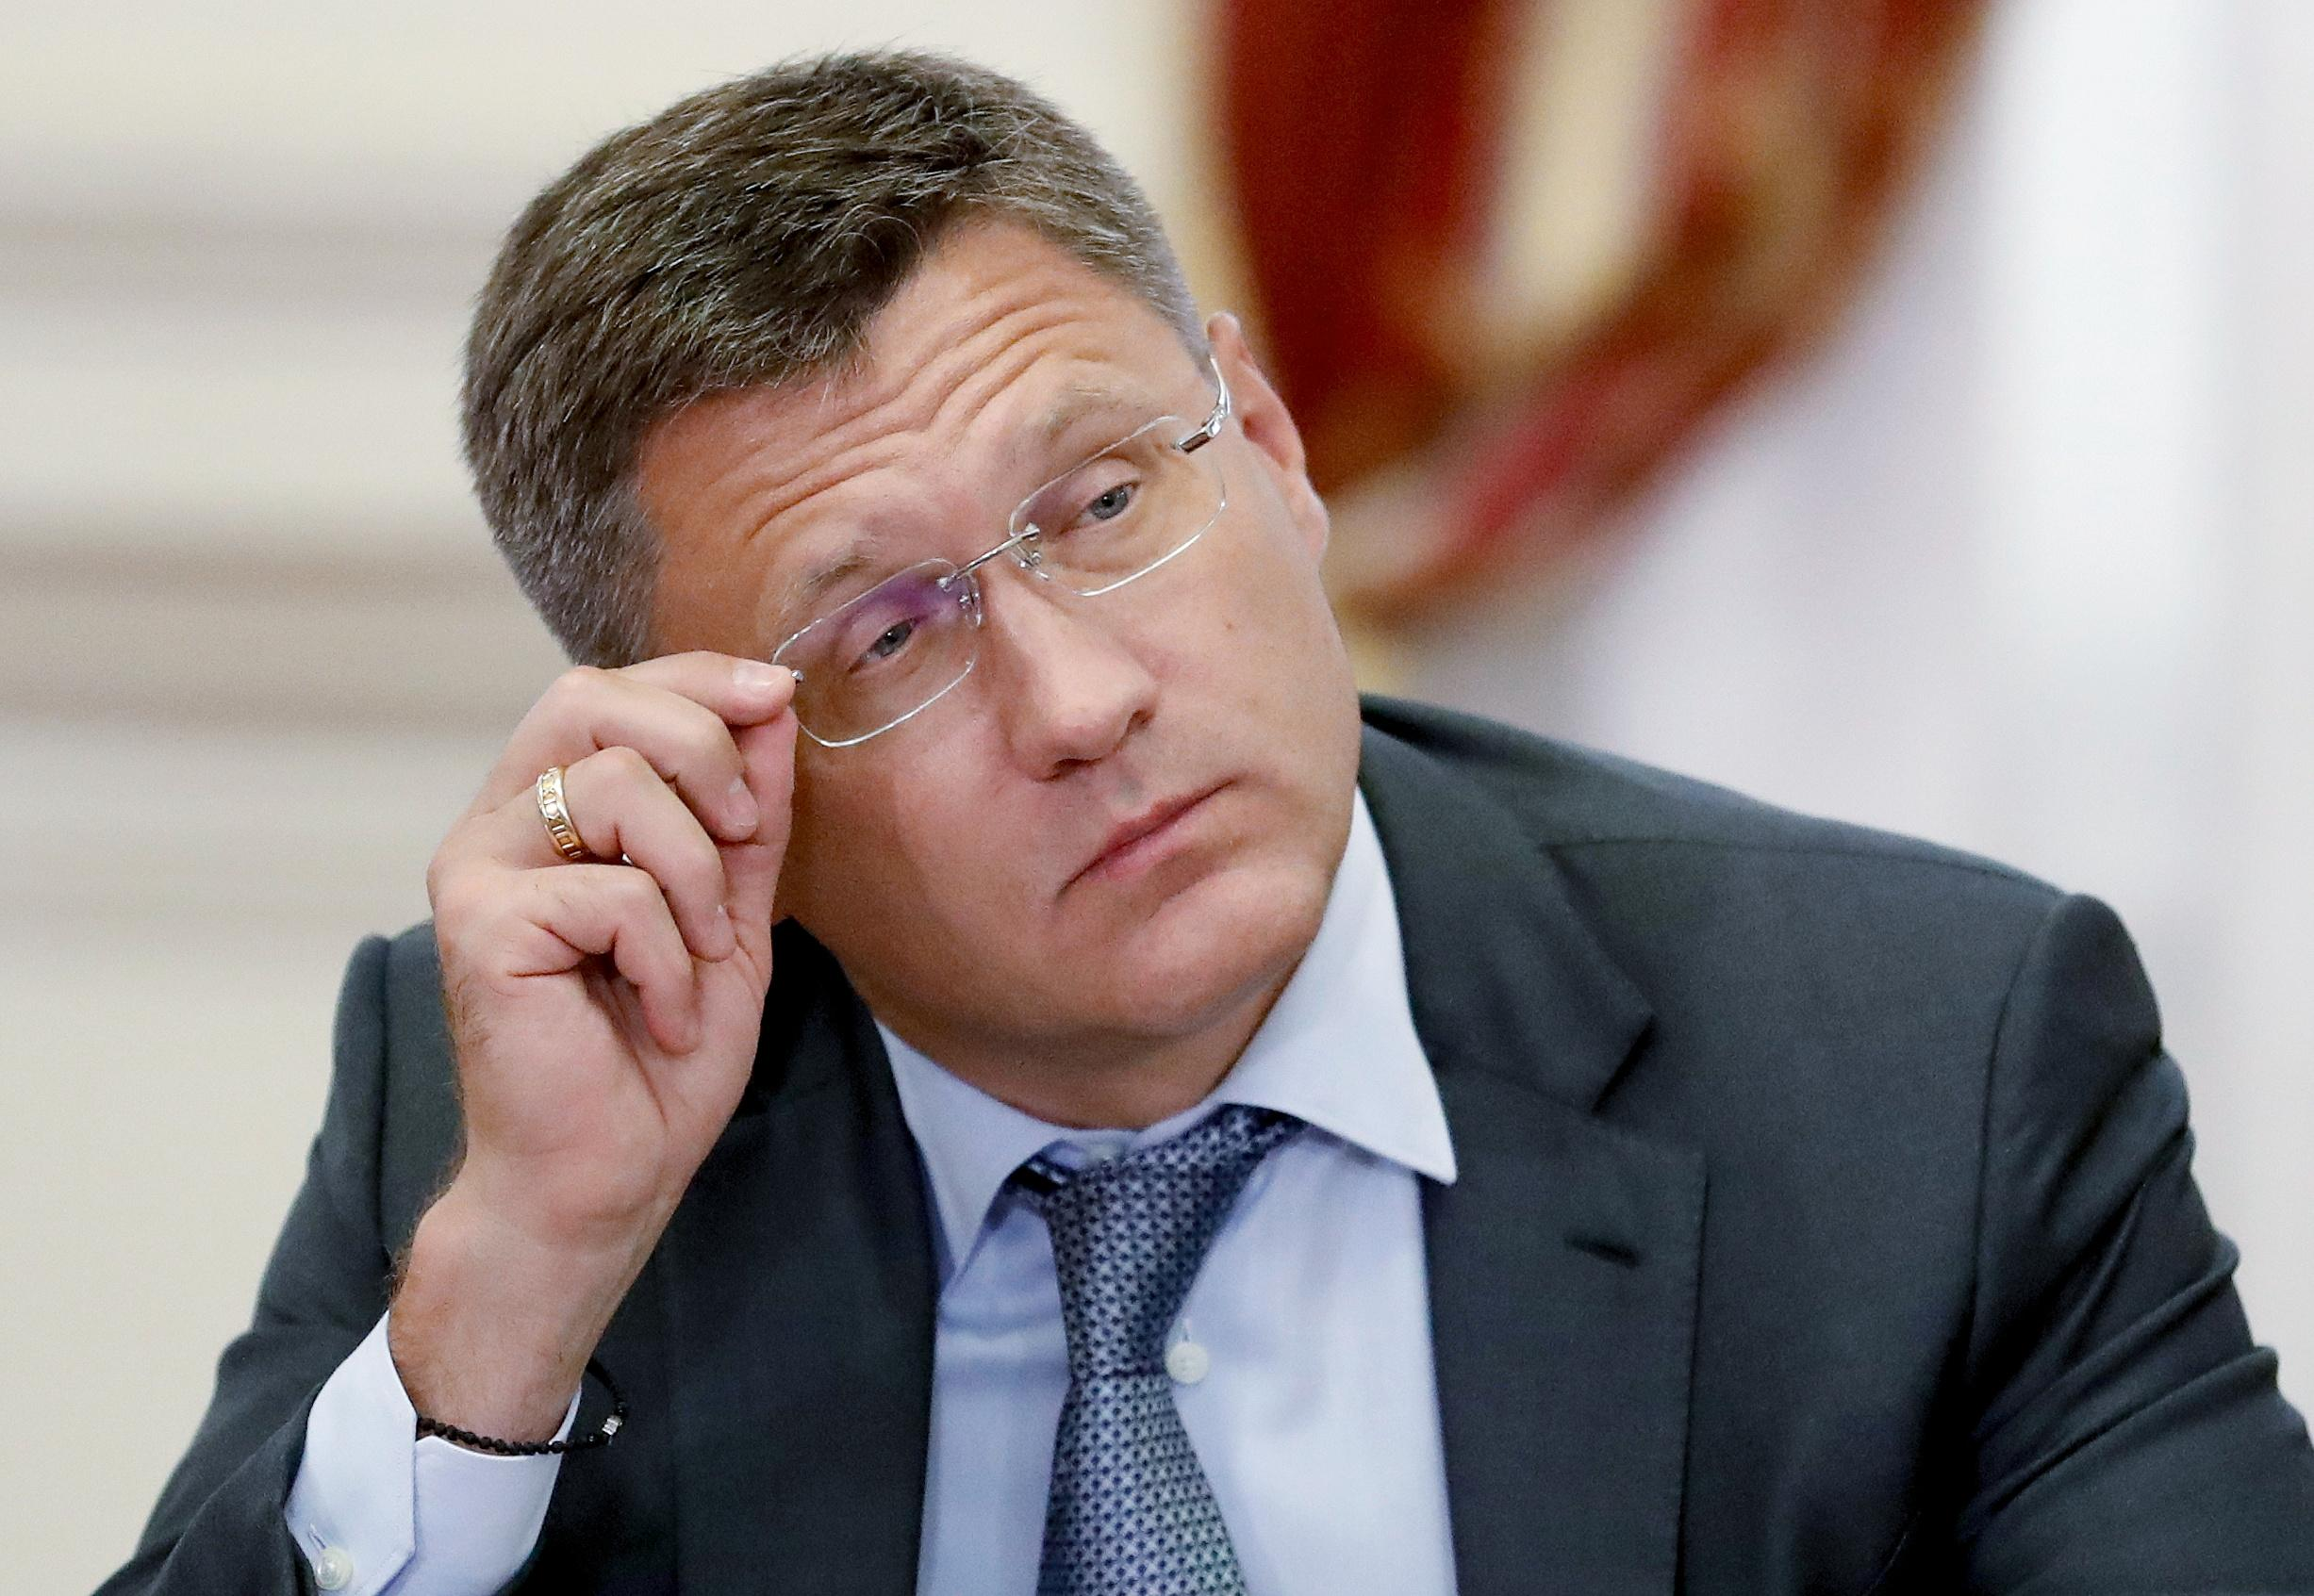 Russia's Sakhalin 1 to build LNG plant - energy minister